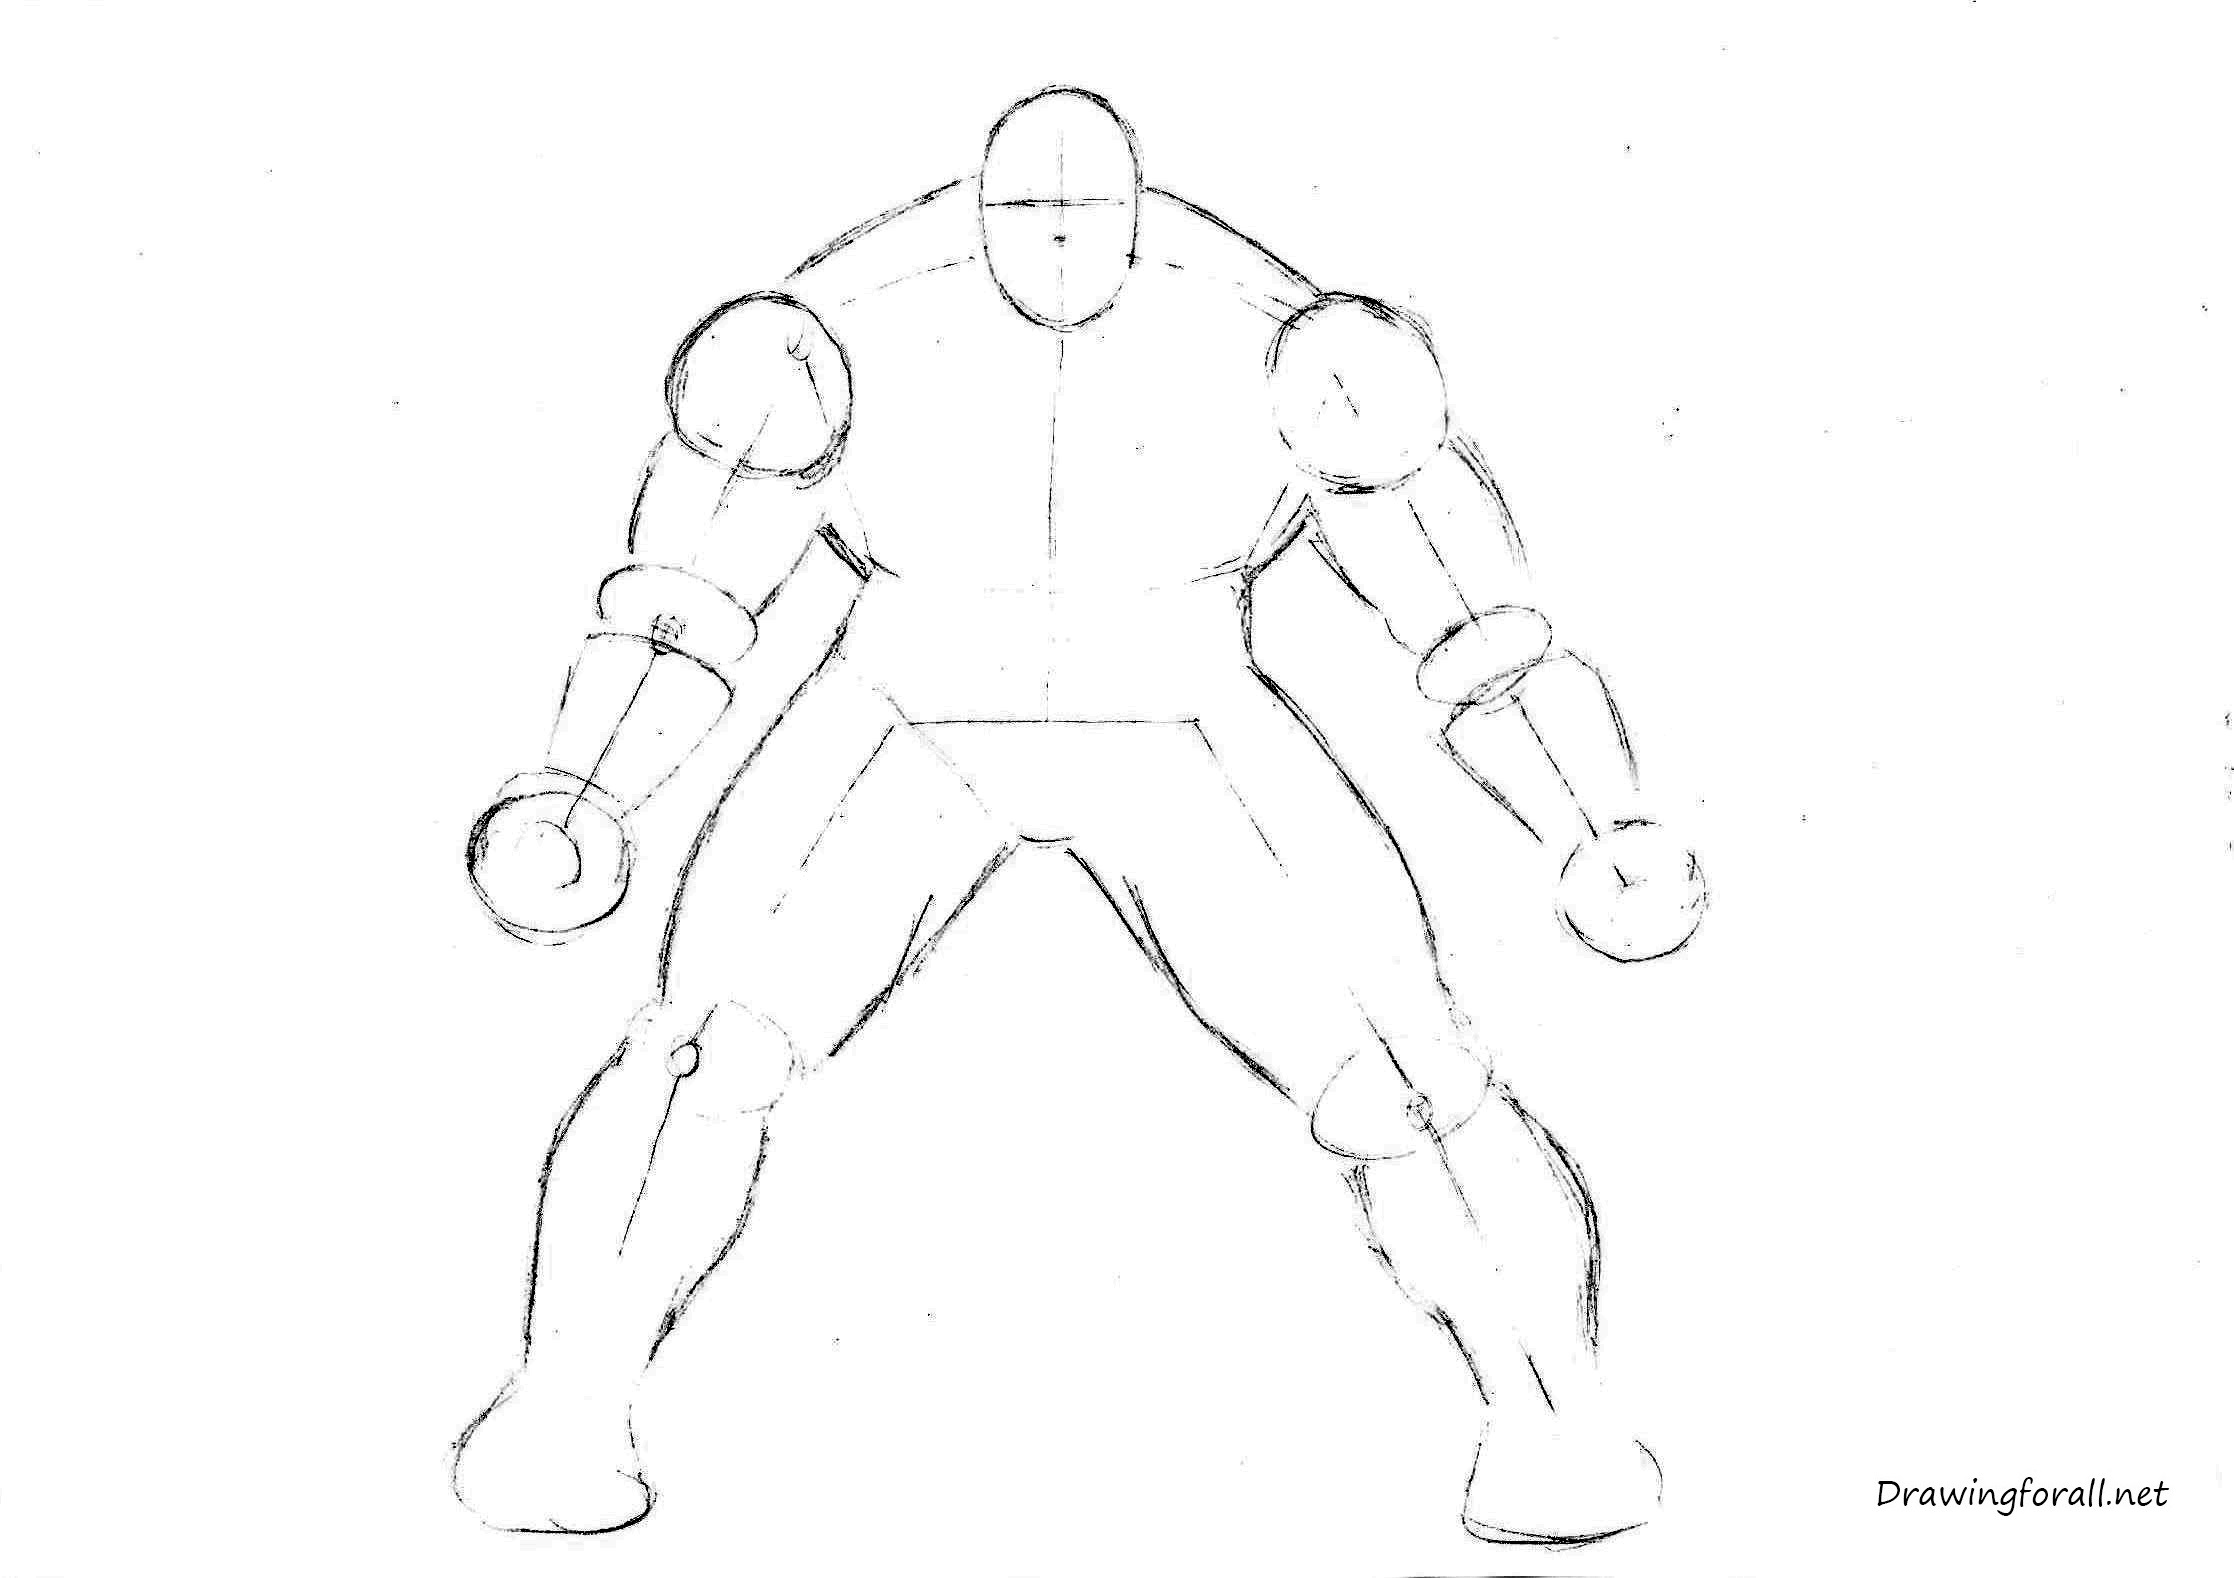 hulk drawing tutorial hulk drawing tutorials 13 learn to draw hulk step by tutorial drawing hulk